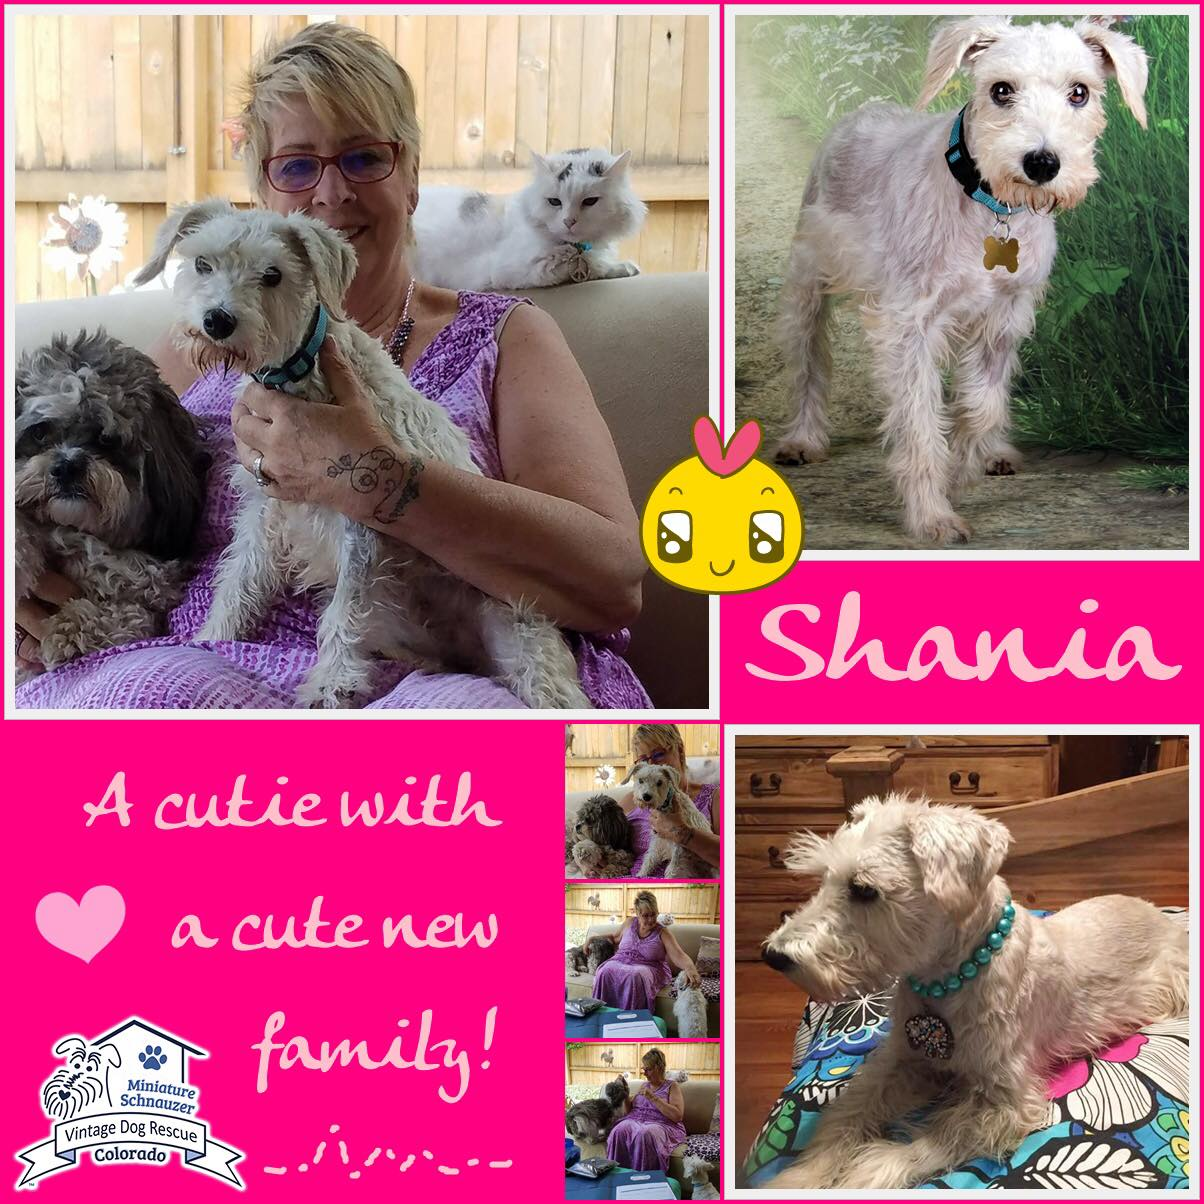 Shania was adopted!